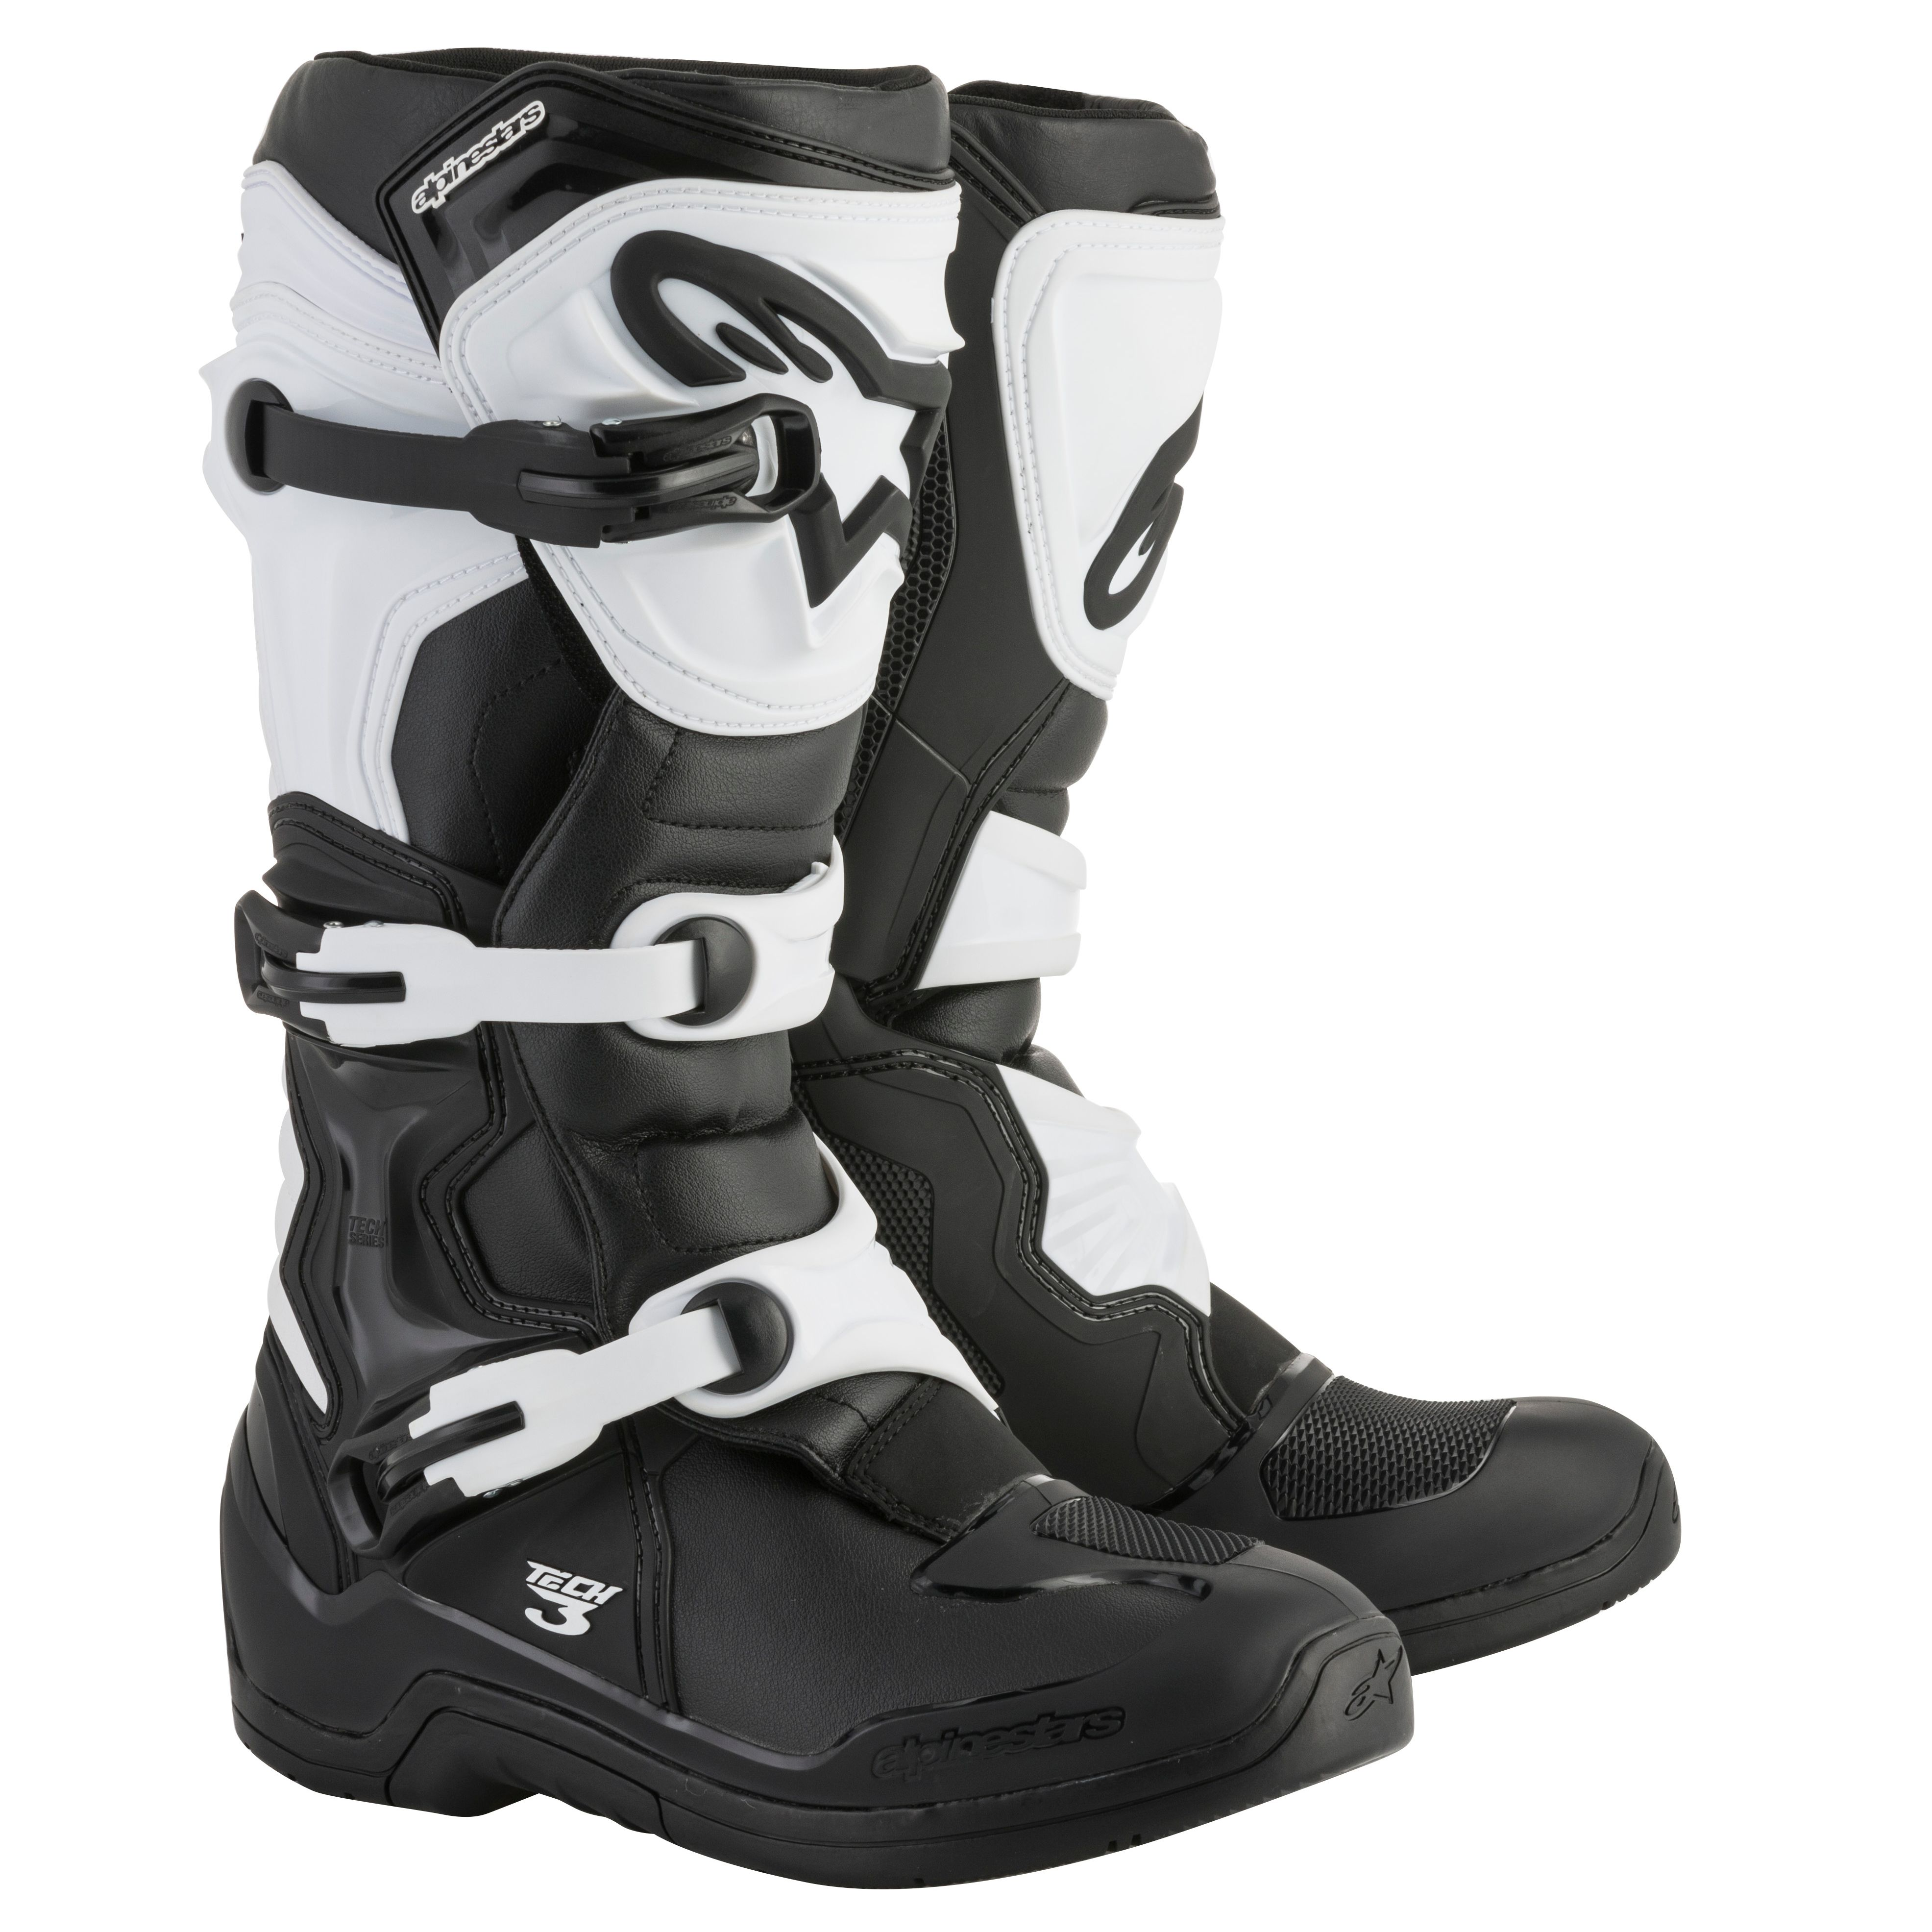 Bottes cross Alpinestars TECH 3 BLACK WHITE 2018